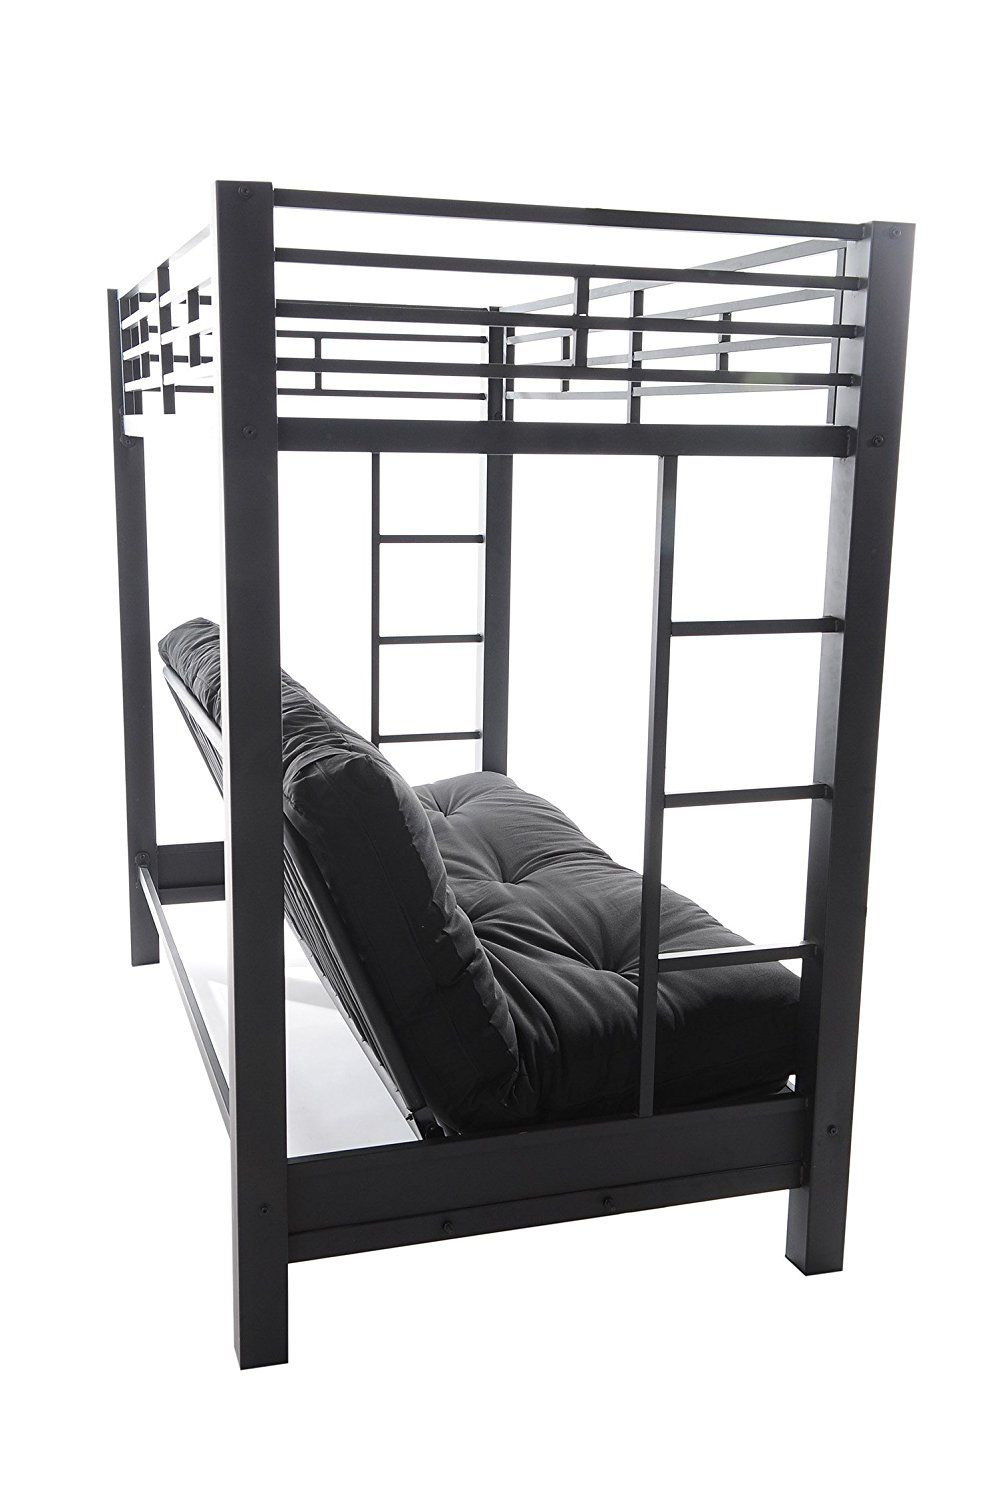 2018 Couch That Turns Into A Bunk Bed Amazon Interior Design